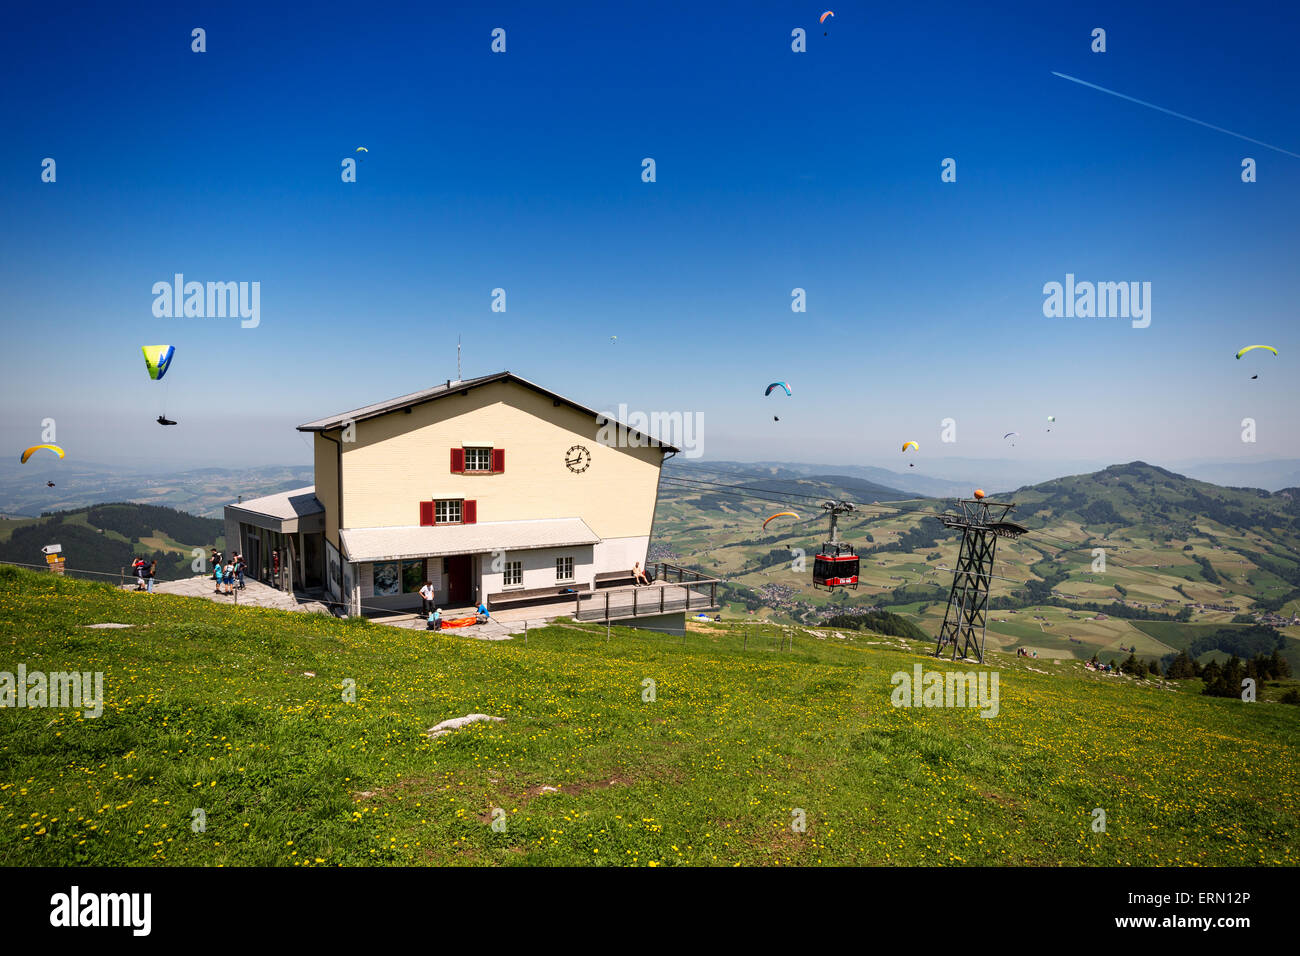 Summit station of the Ebenalp cableway in Switzerland - Stock Image